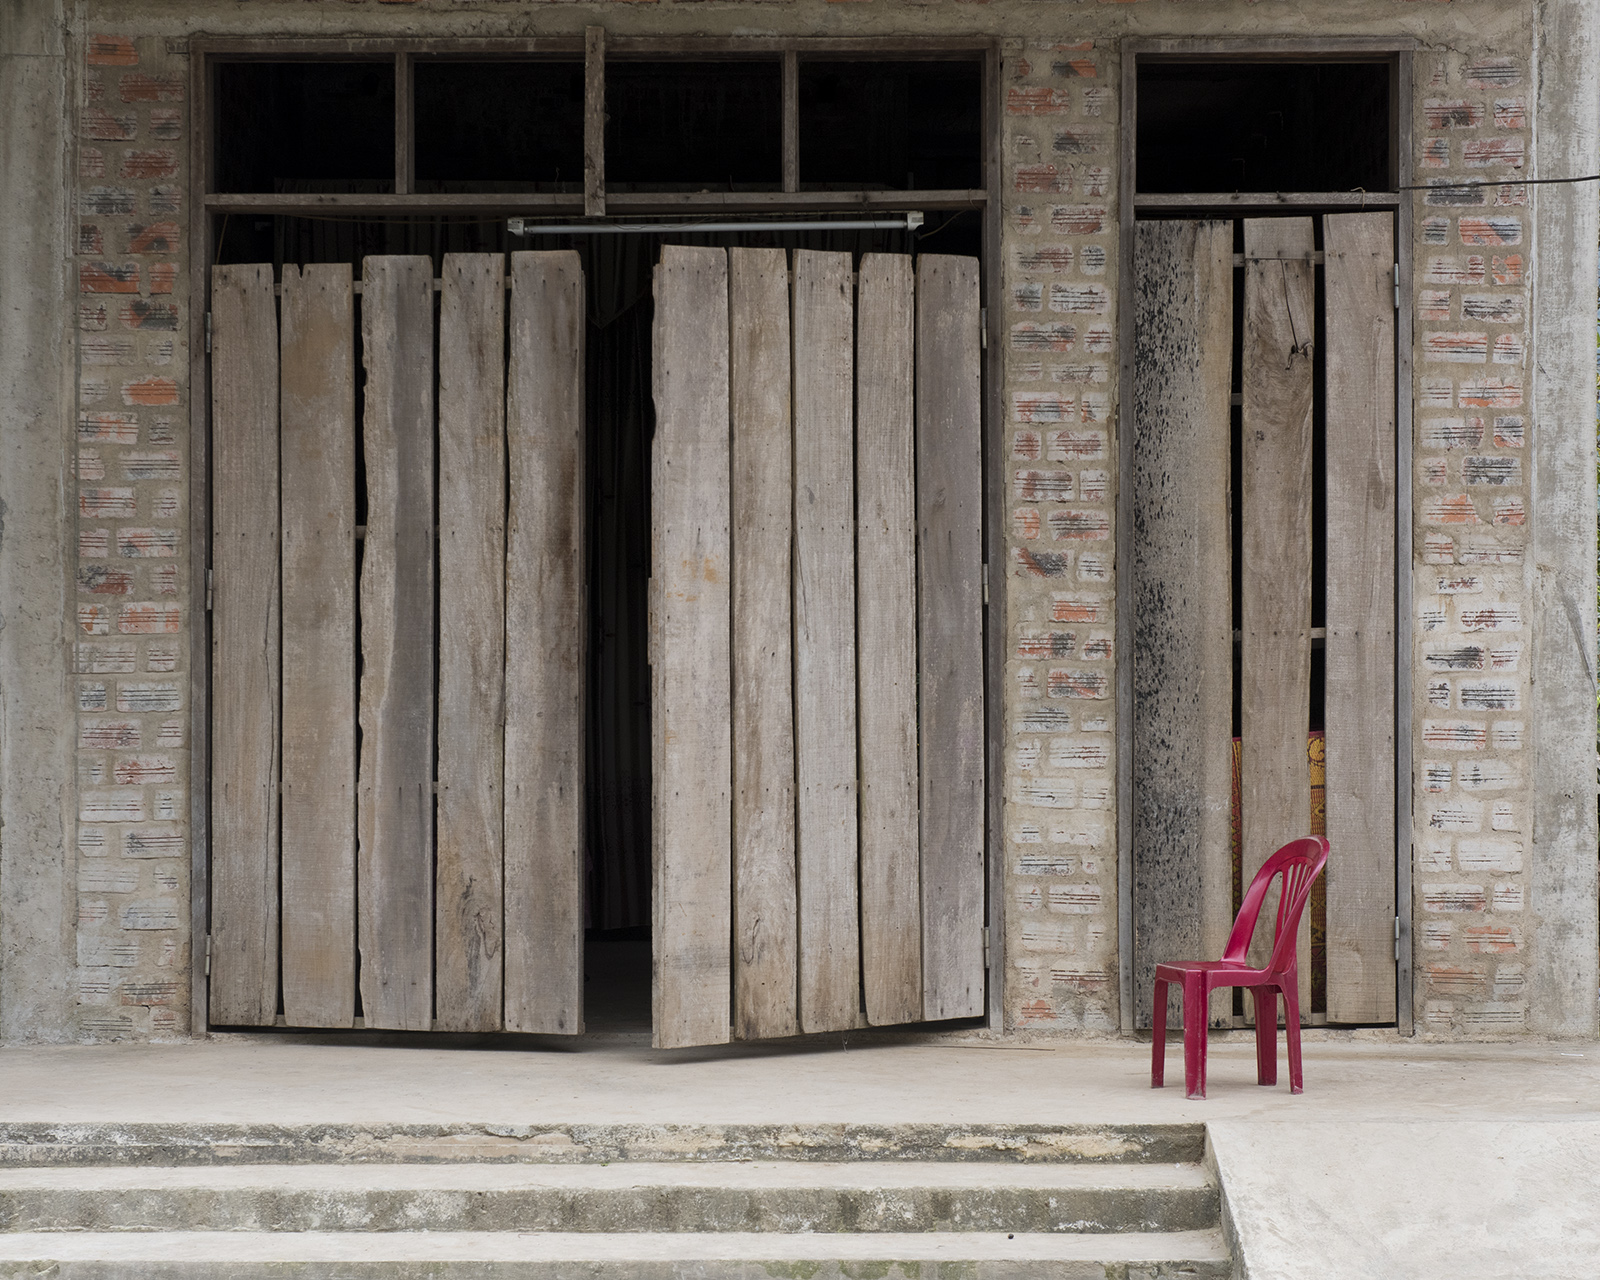 vietnam, door, chair, red chair, phong nha, worn, rustic, barnboard, brick, solitude, alone